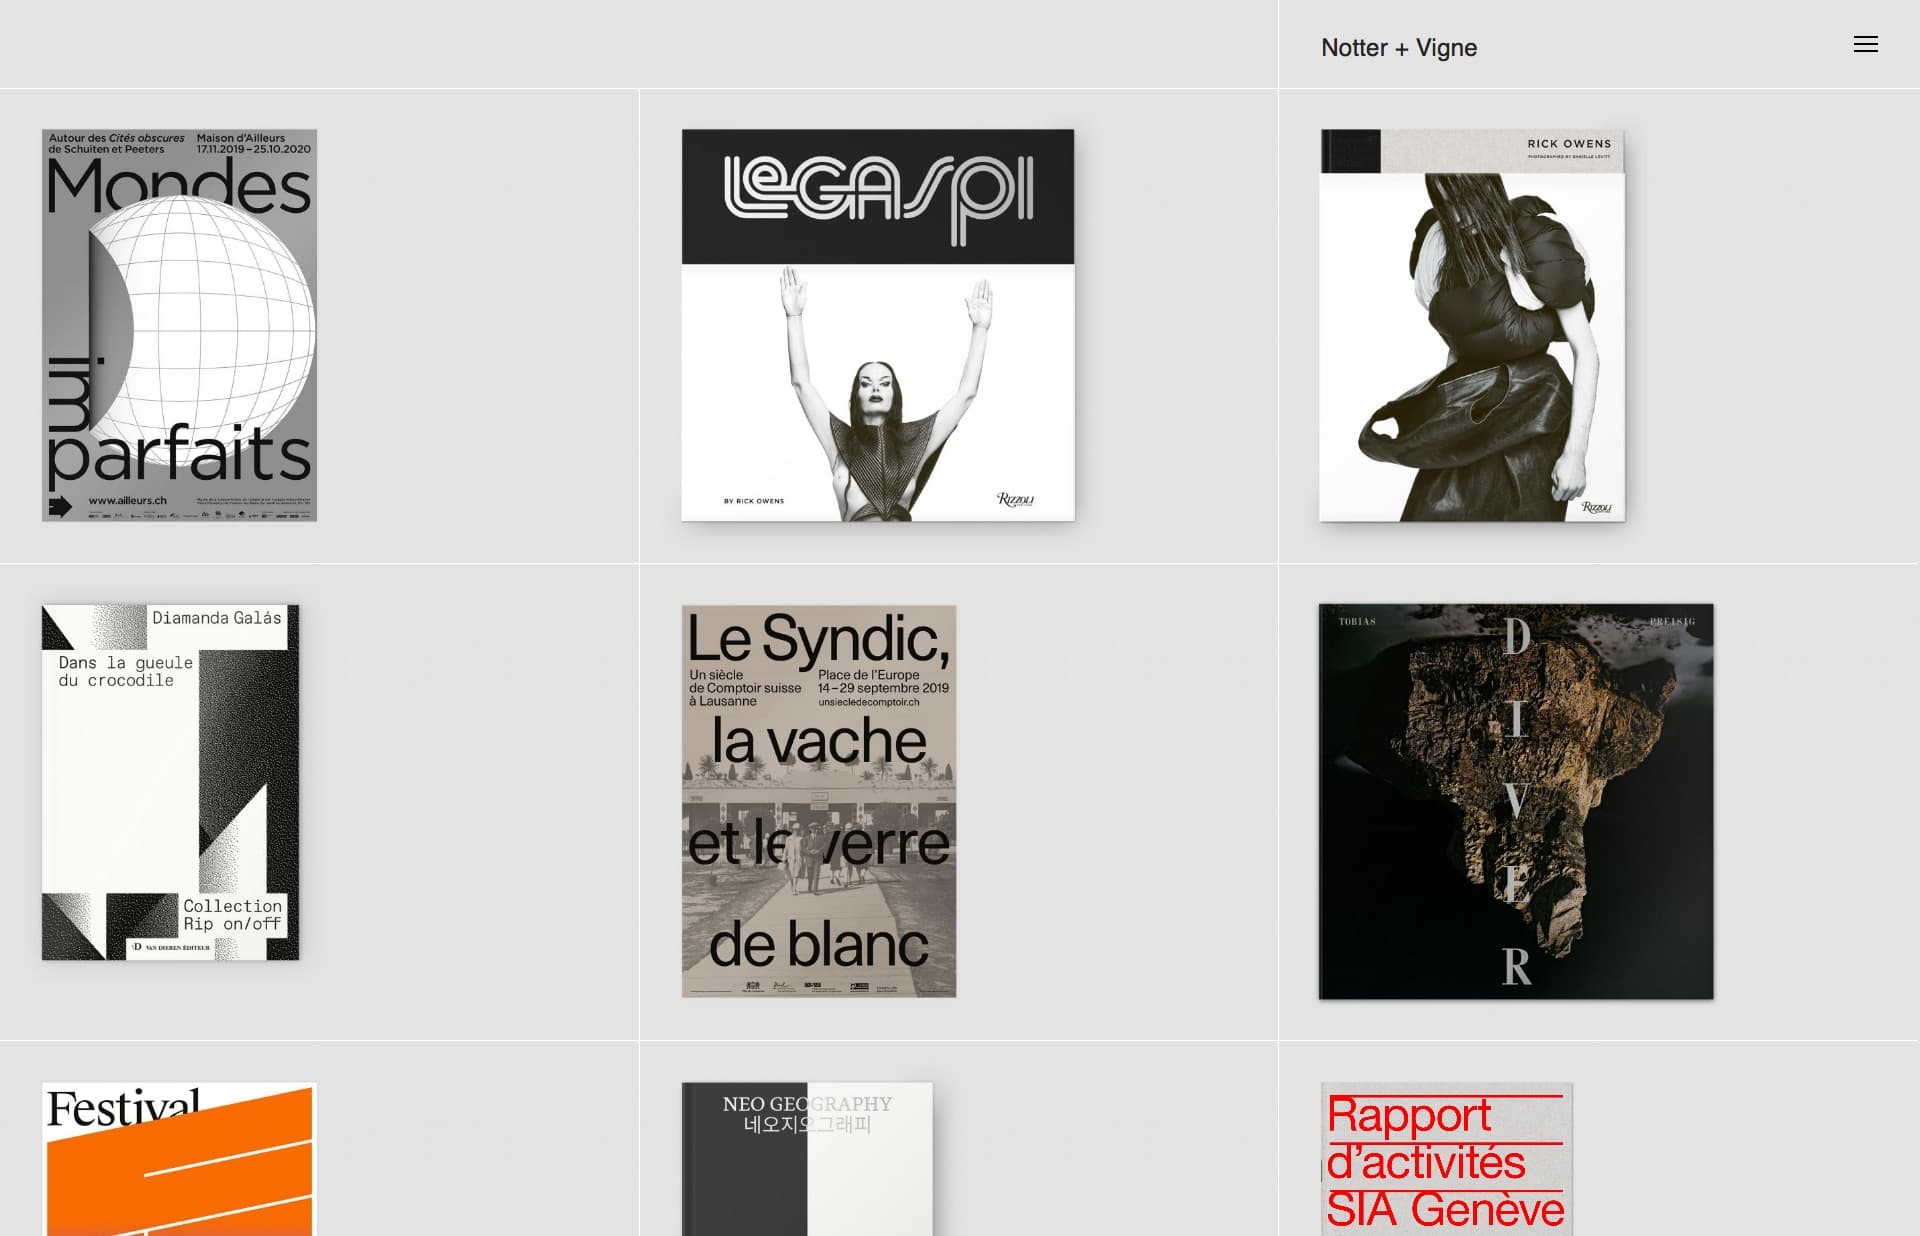 Screenshot of the website Notter + Vigne, featured on The Gallery, a curated collection of minimal websites